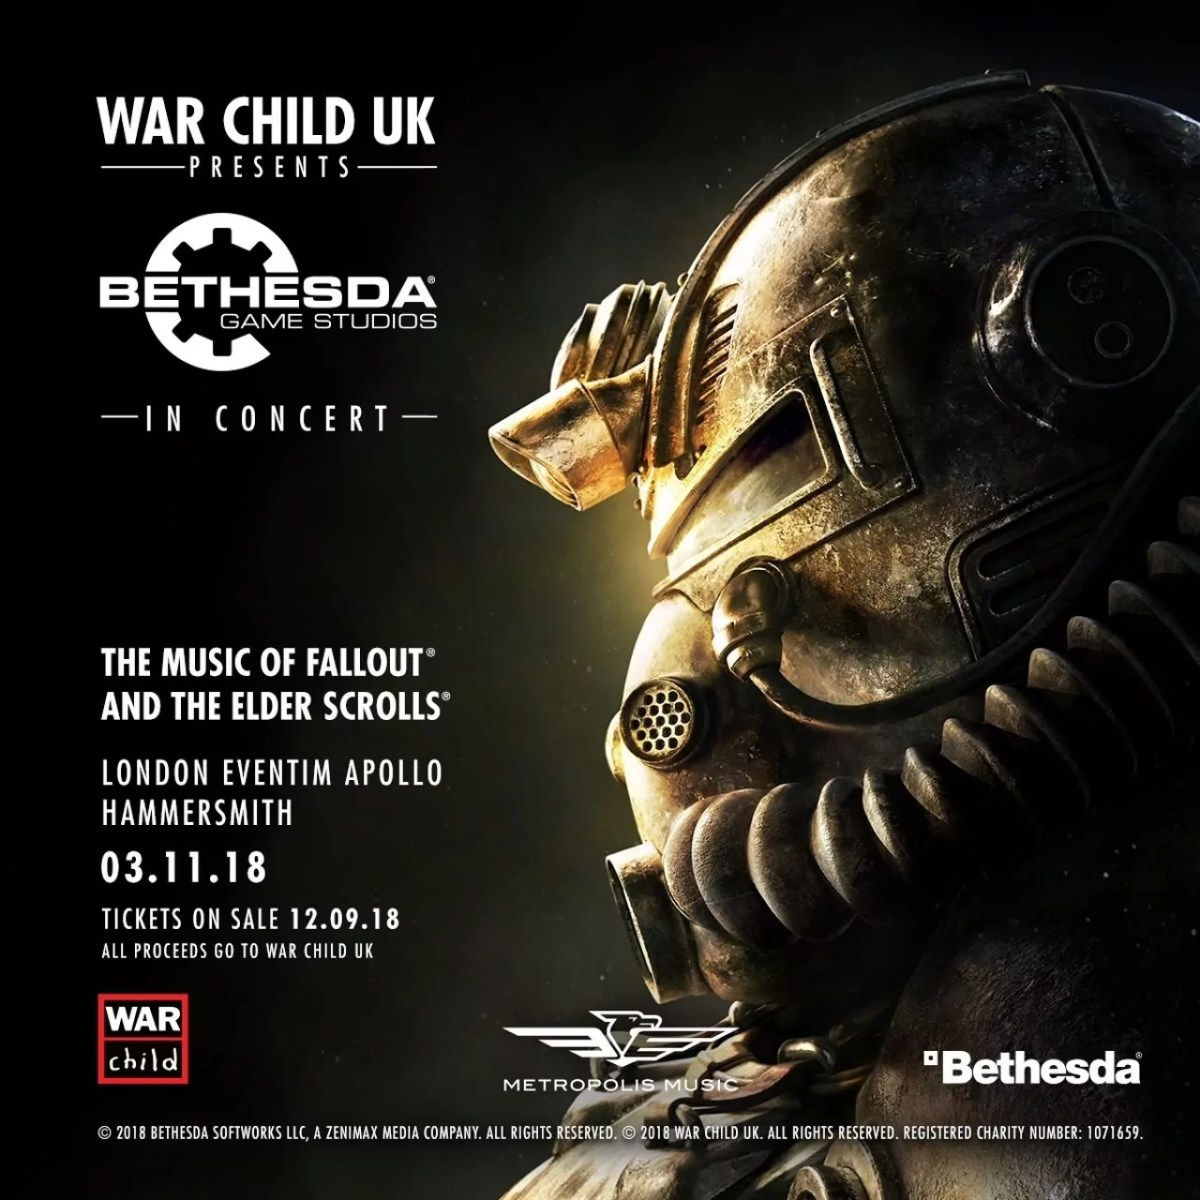 Bethesda War Child UK